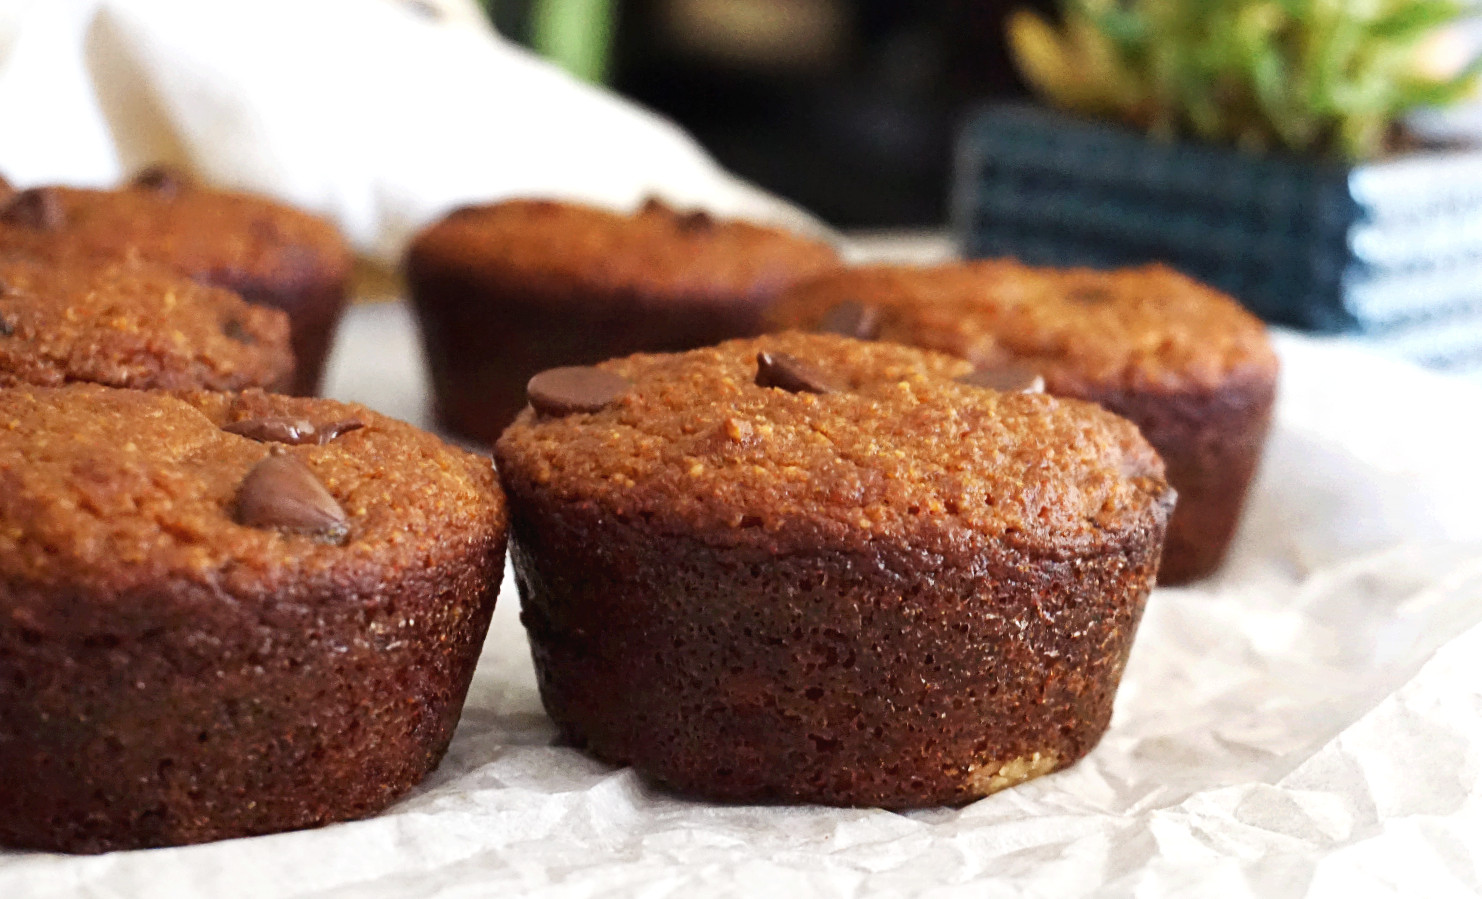 muffins on parchment paper